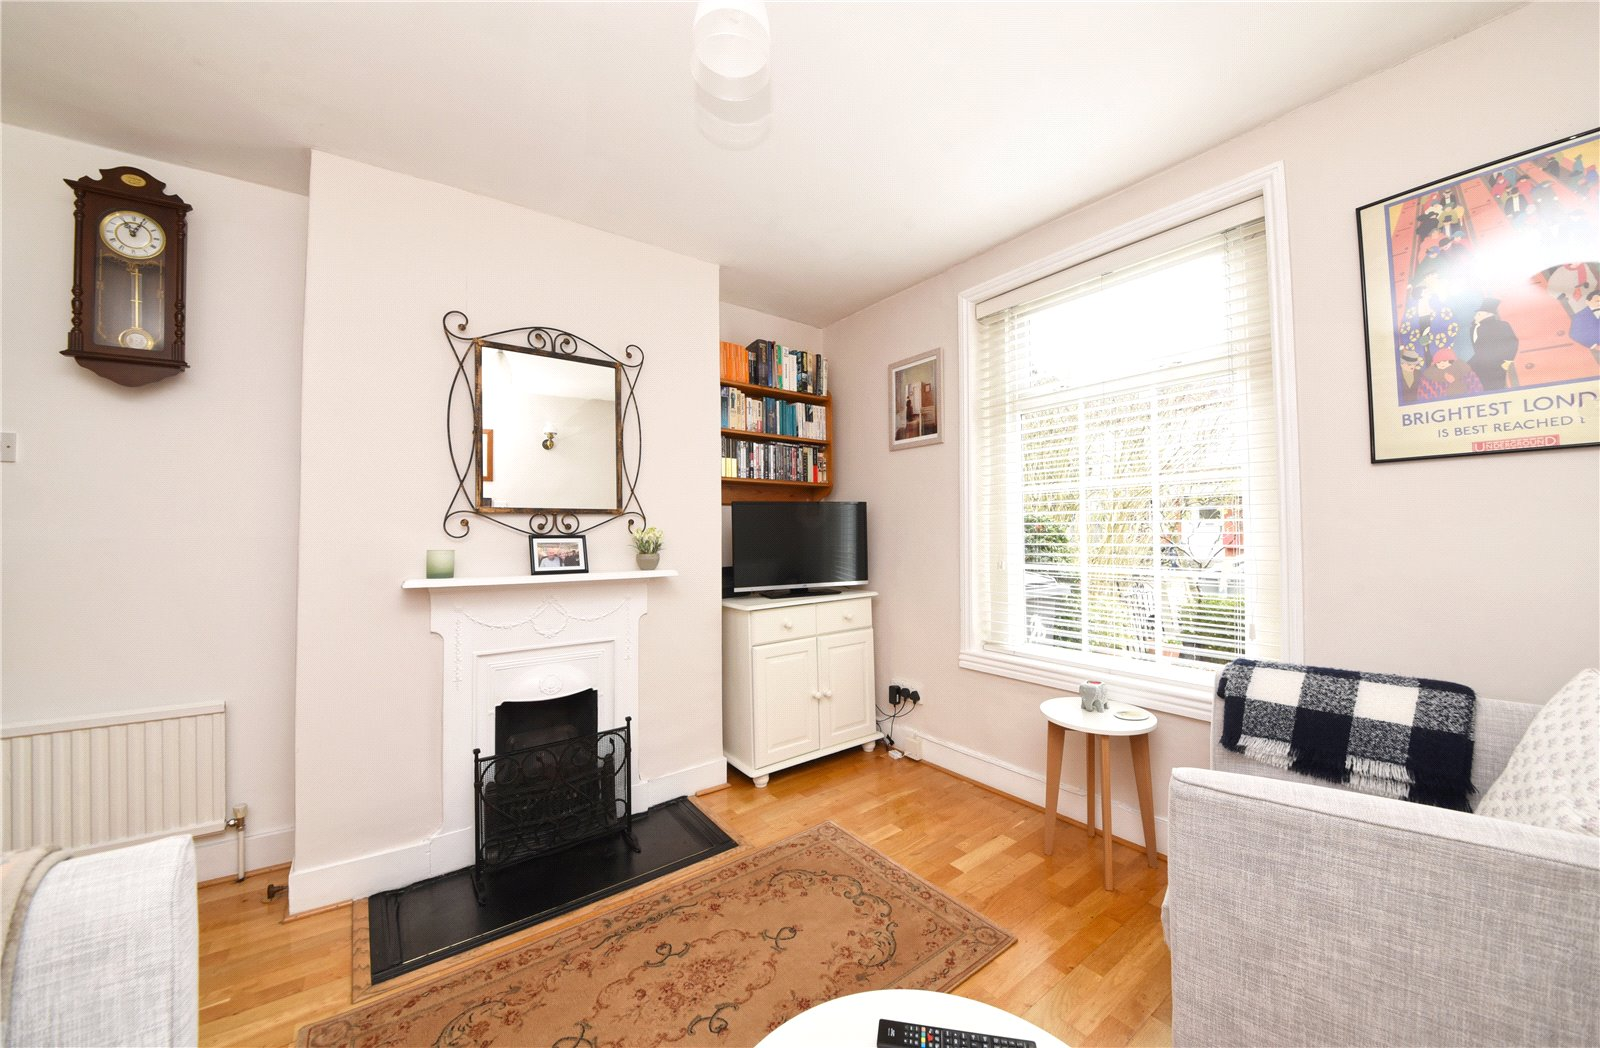 2 bed house for sale in London, N12 9JN  - Property Image 7